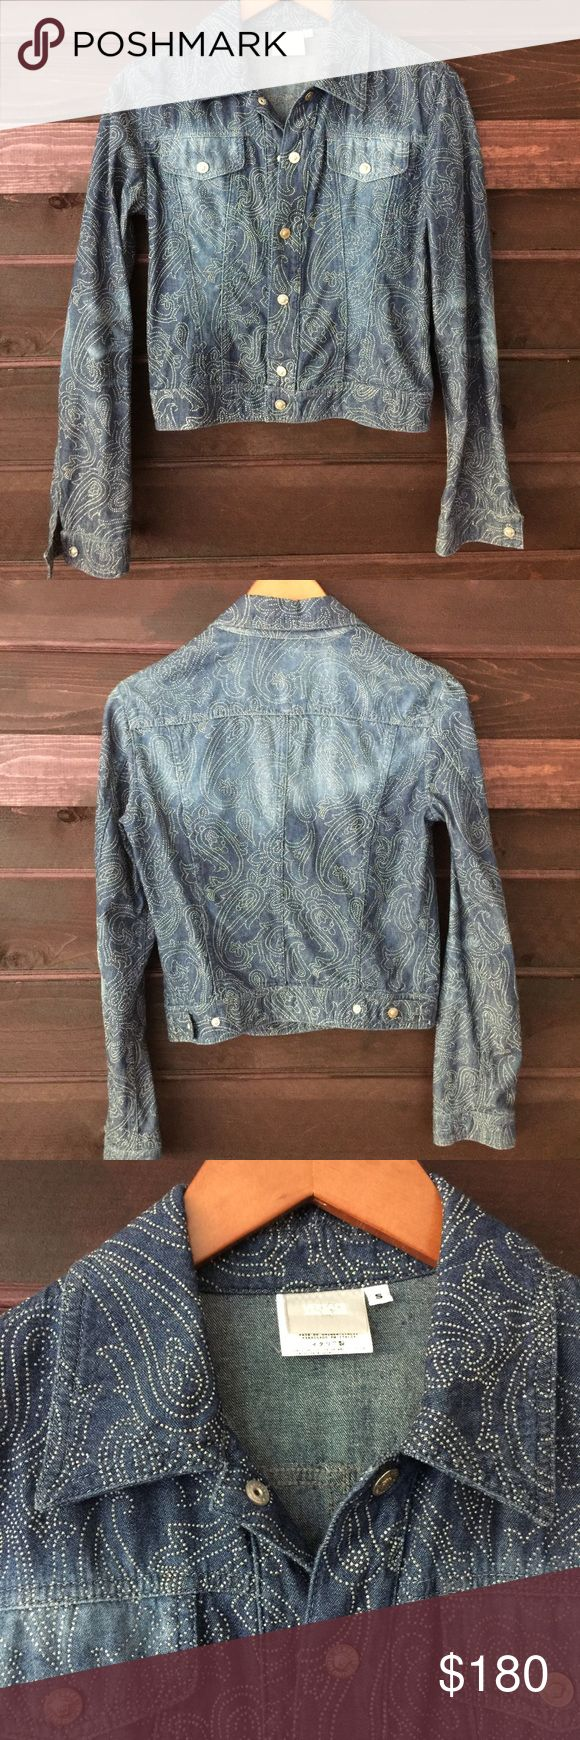 Versace embellished denim jacket Beautiful Versace jacket, lightweight denim Versace Jackets & Coats Jean Jackets